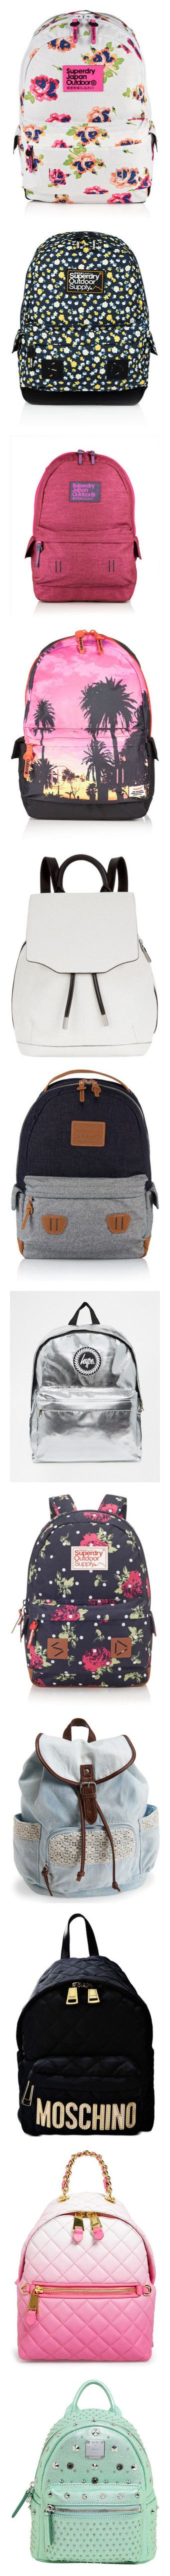 """Cute school bag"" by mimmykitty327 ❤ liked on Polyvore featuring bags, backpacks, white, superdry, knapsack bags, superdry bag, superdry backpack, white bags, navy and floral bag"